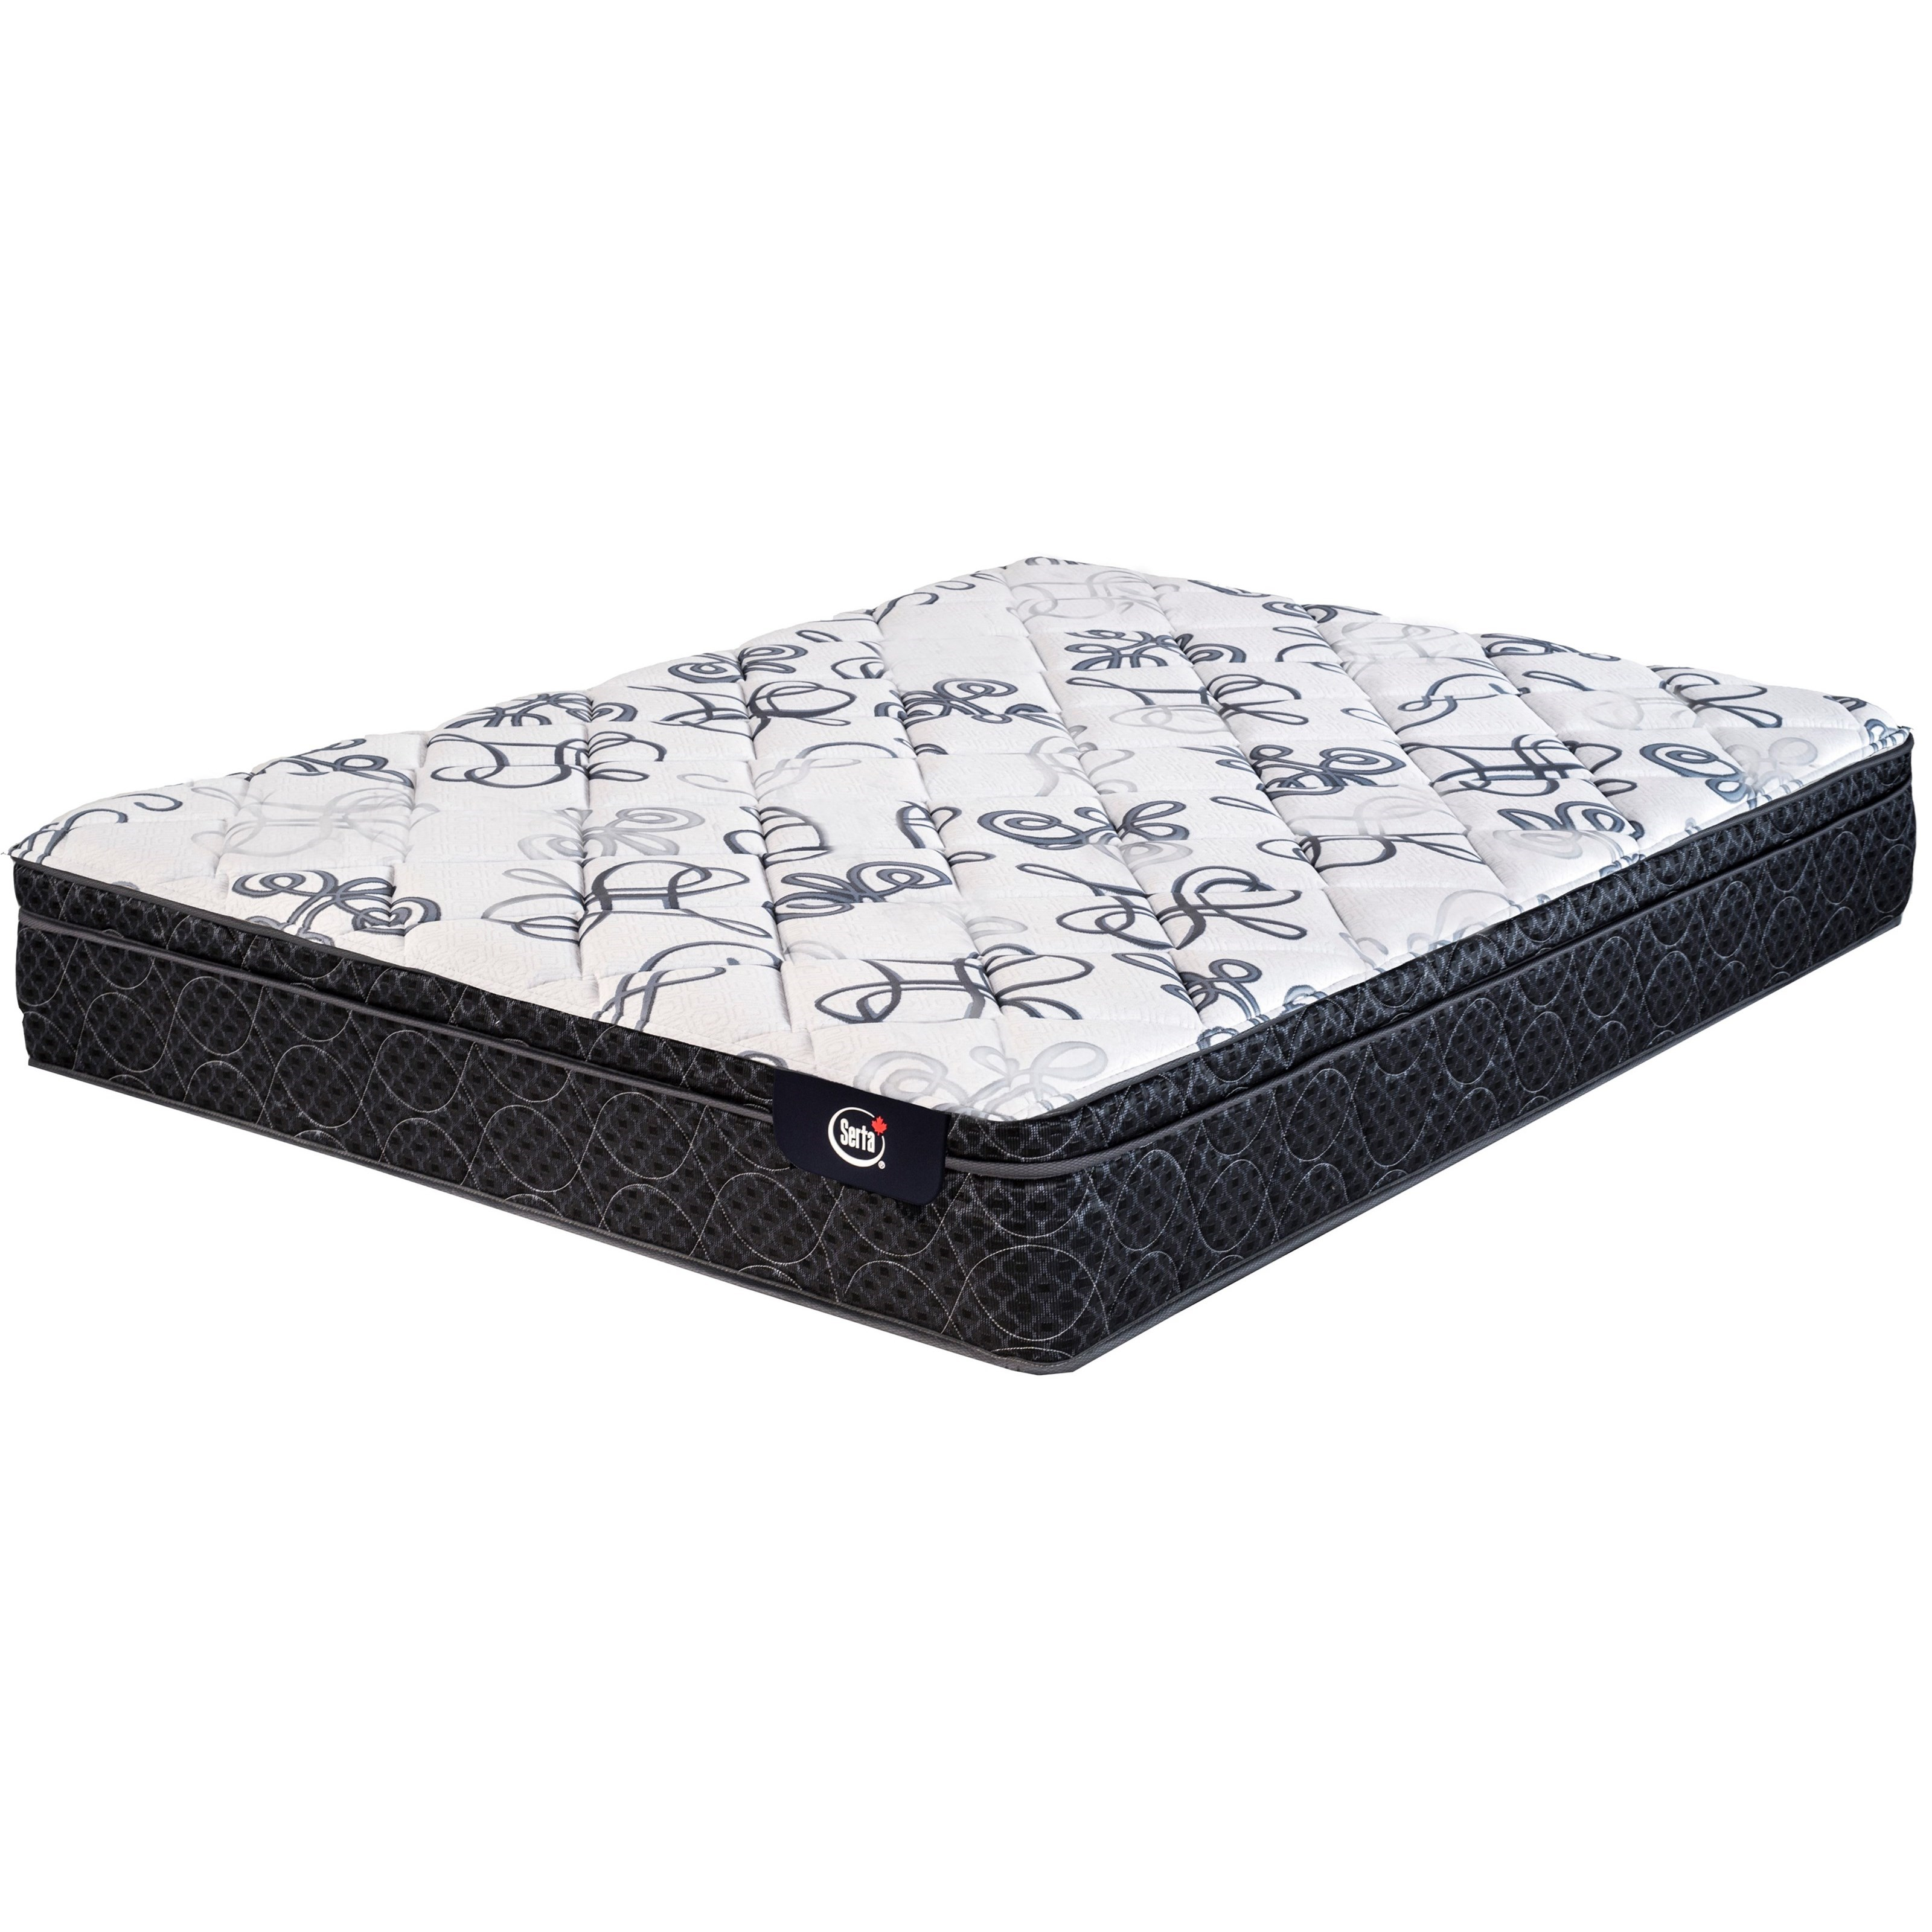 Mardi Gras Special Purchase Full Special Purchase Euro Top Mattress by Serta Canada at Stoney Creek Furniture